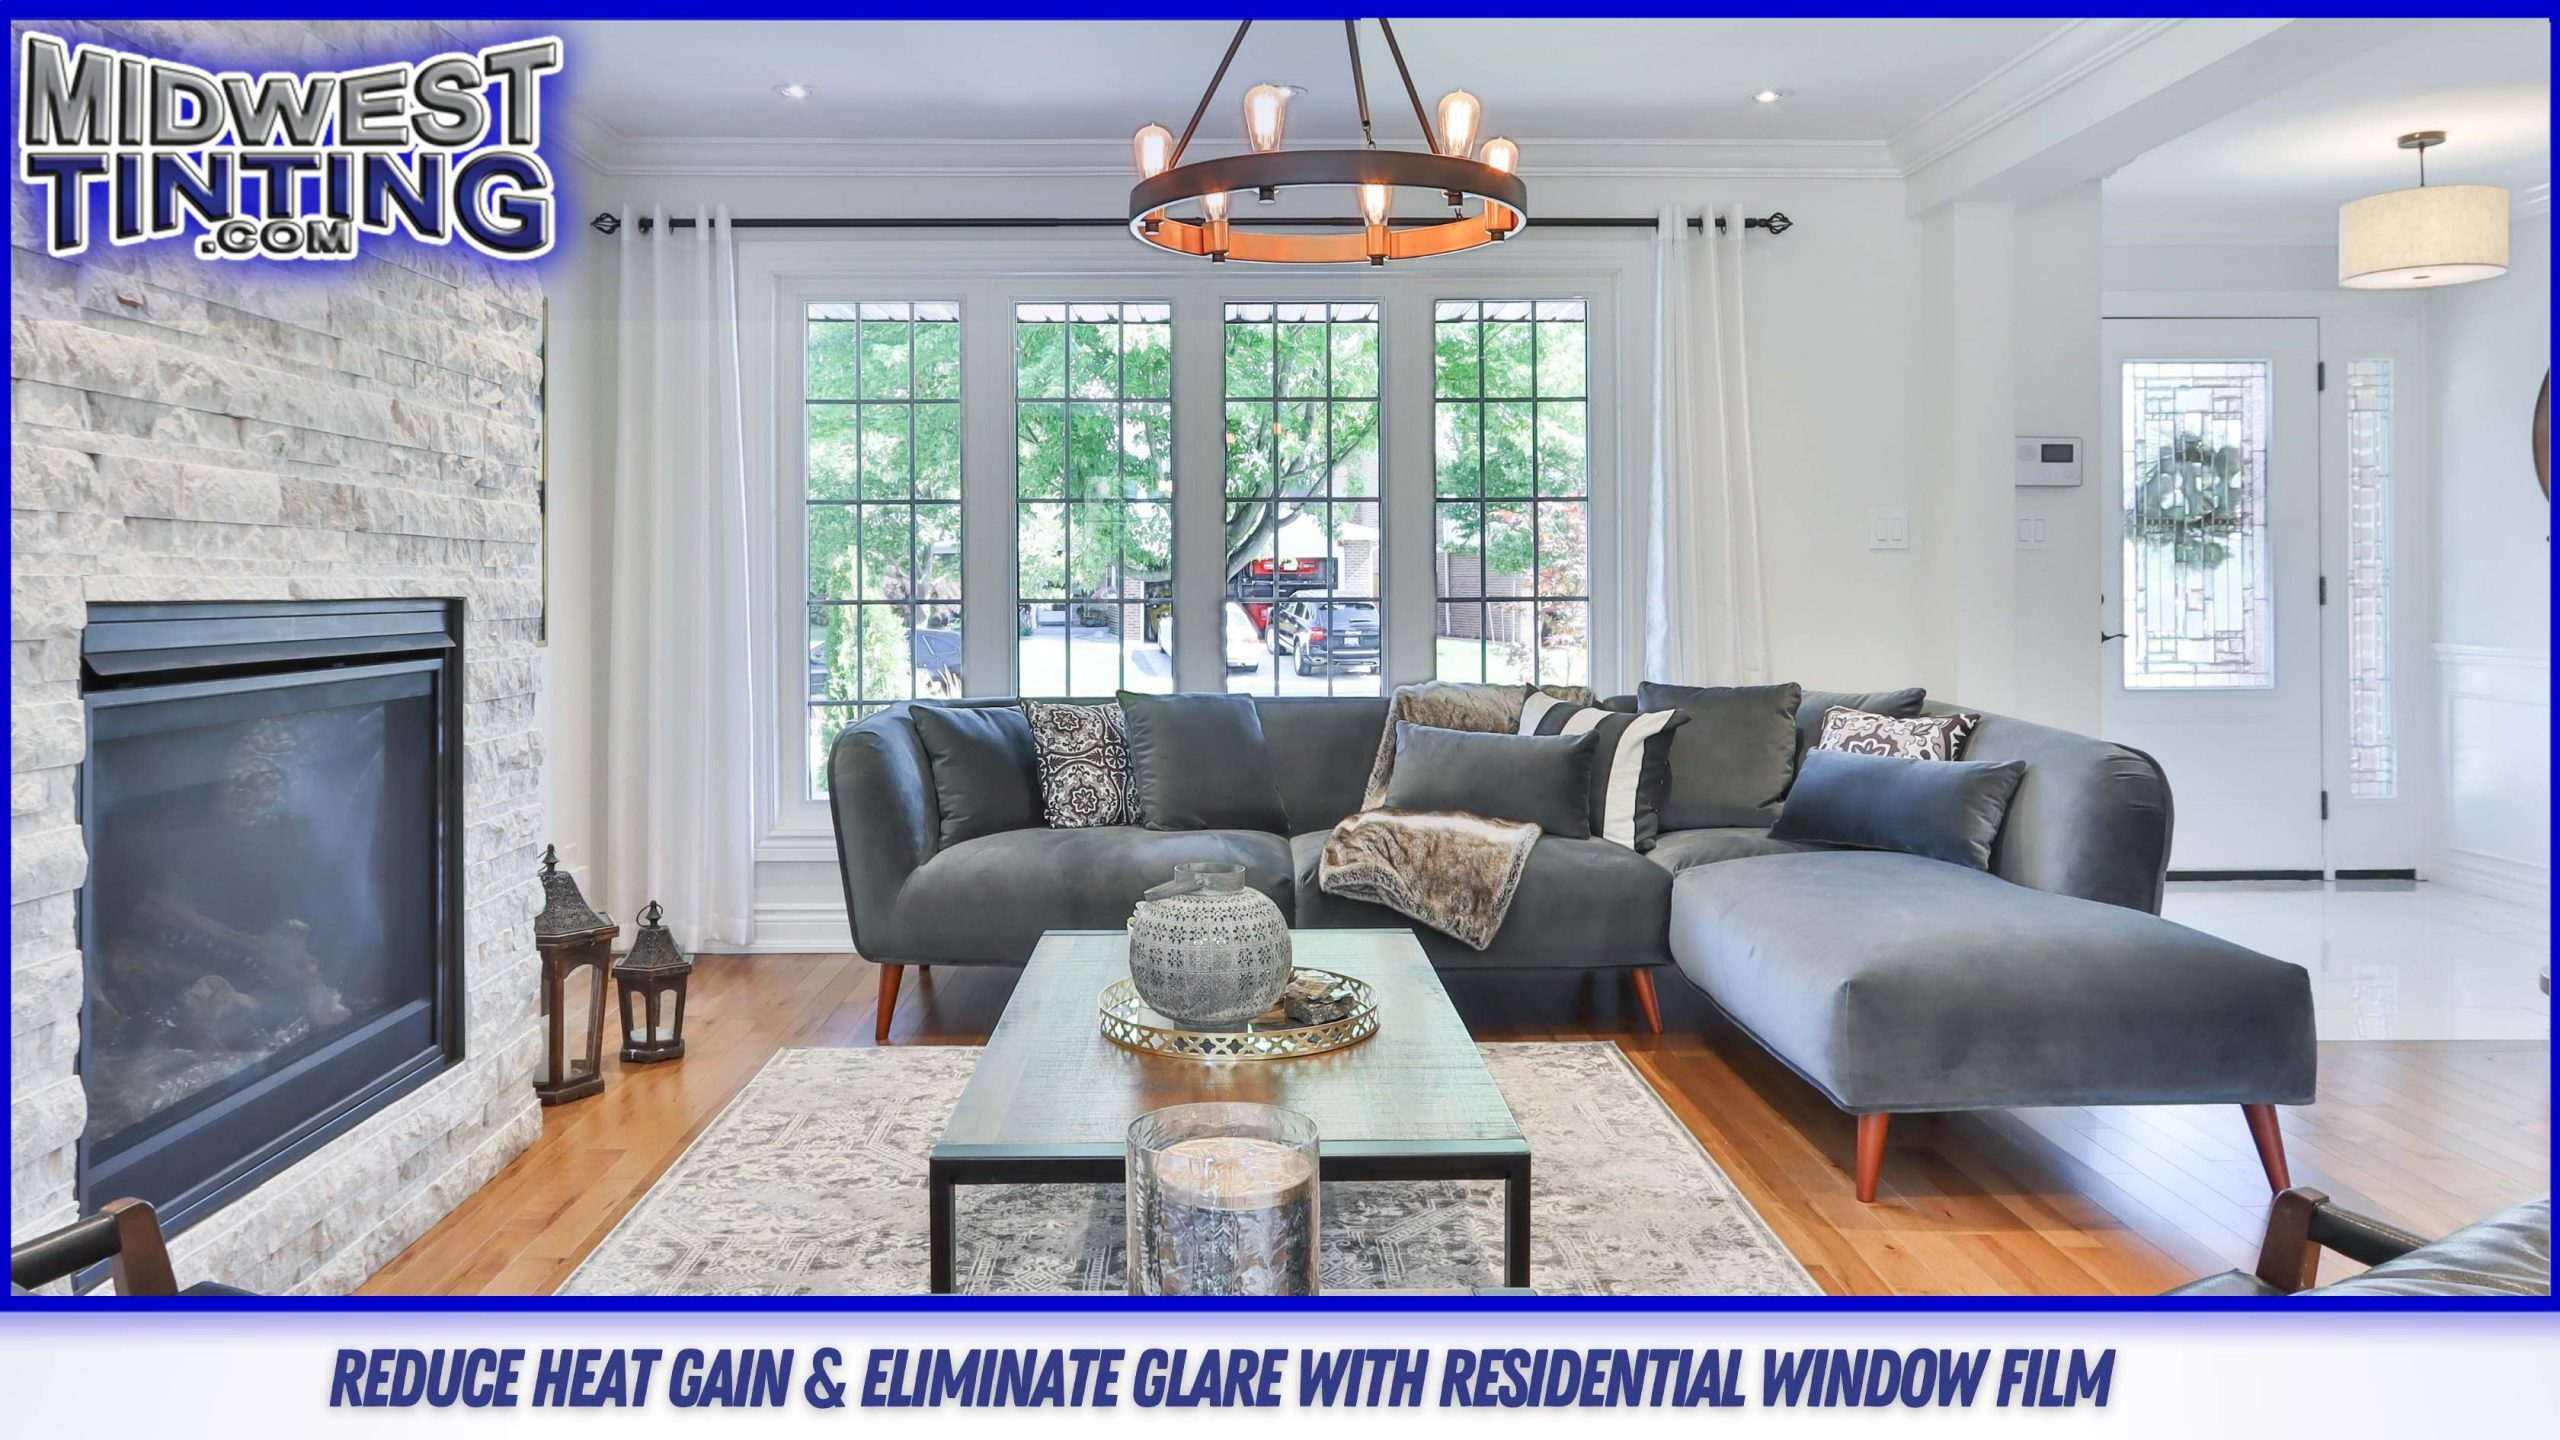 House Window Films Keep Your Home Cool As The Summer Heats Up - Home Window Tinting Services in Kansas City and Sunrise Beach, Missouri.